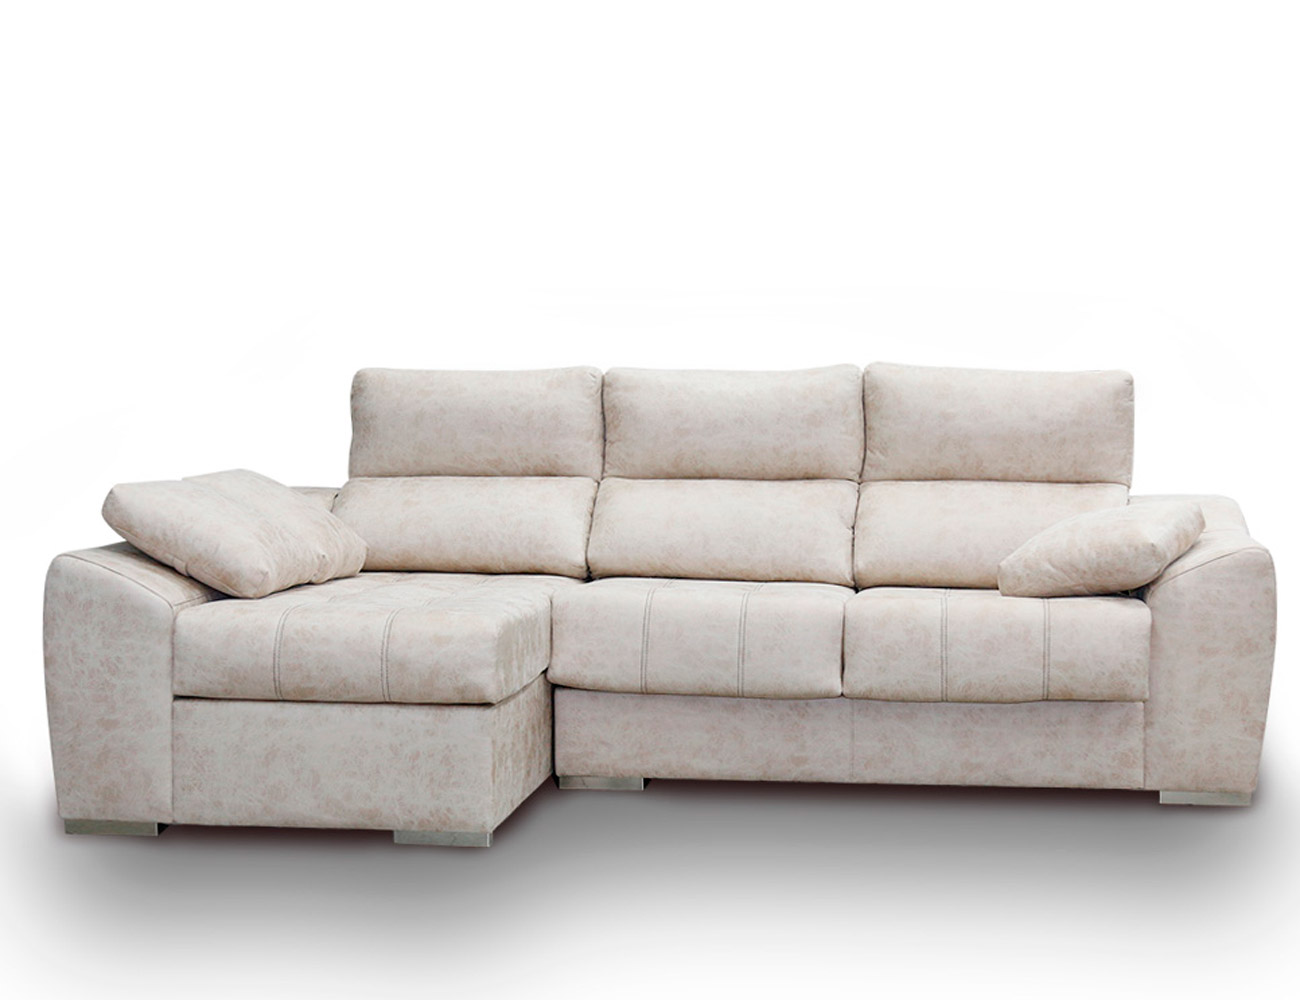 Sofa chaiselongue anti manchas beig blanco3